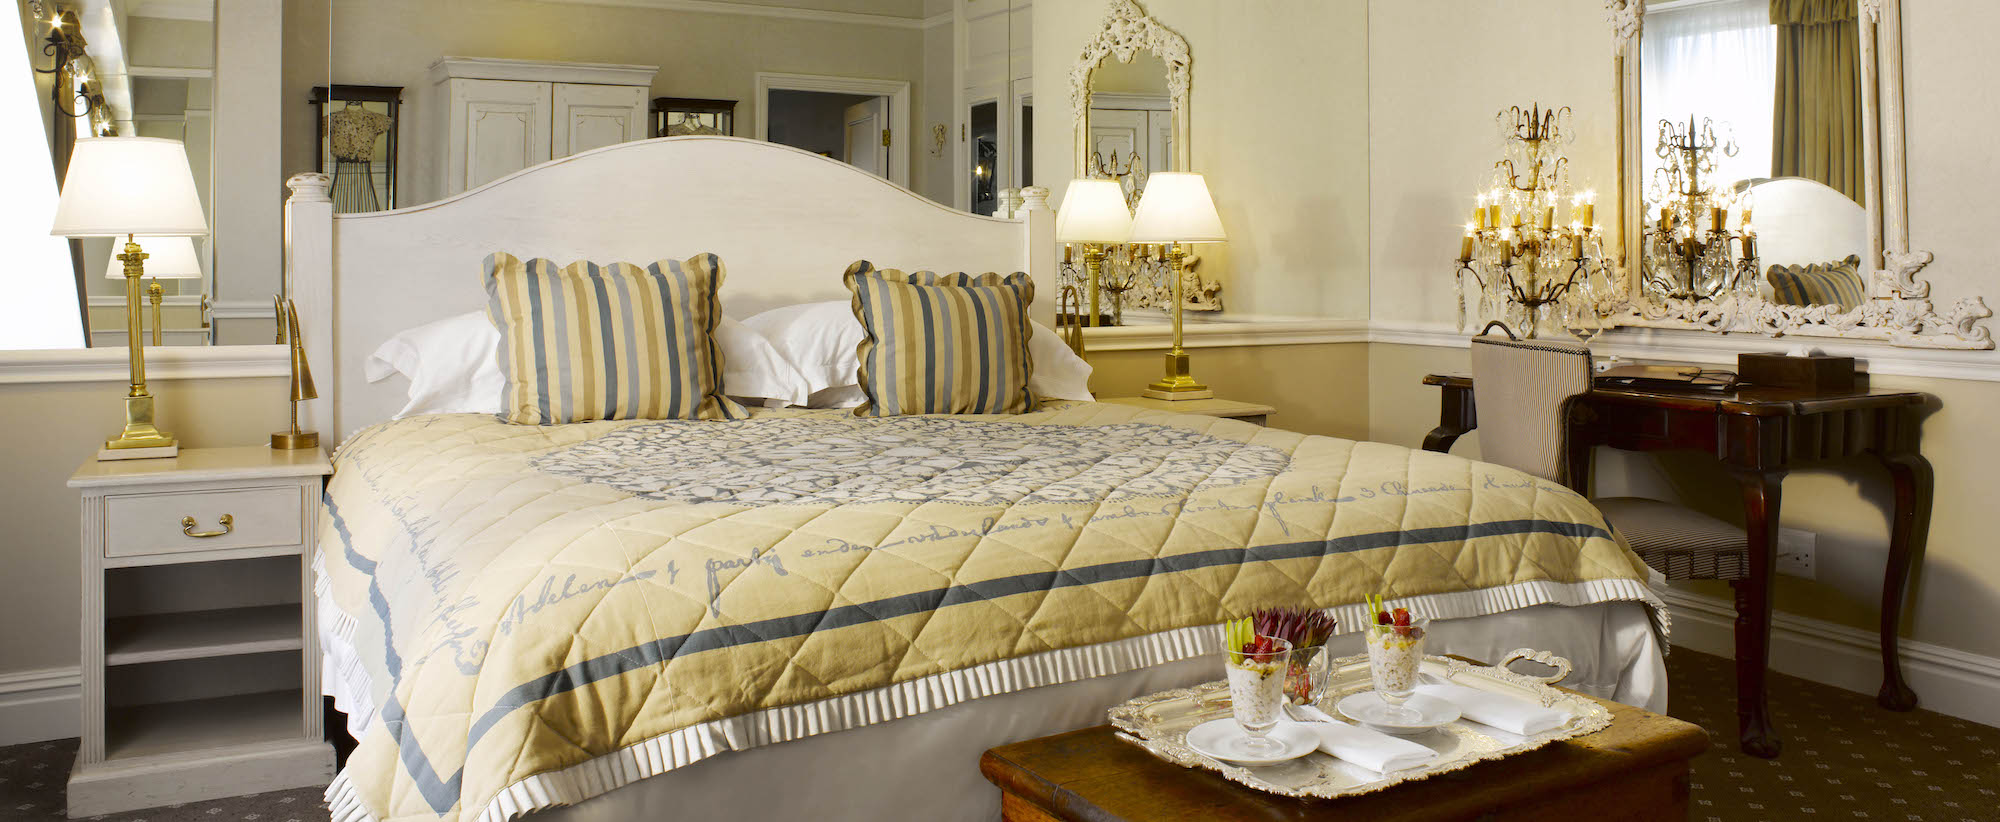 South Africa Safari Package - City and Safari - Cape Grace Hotel Cape Town